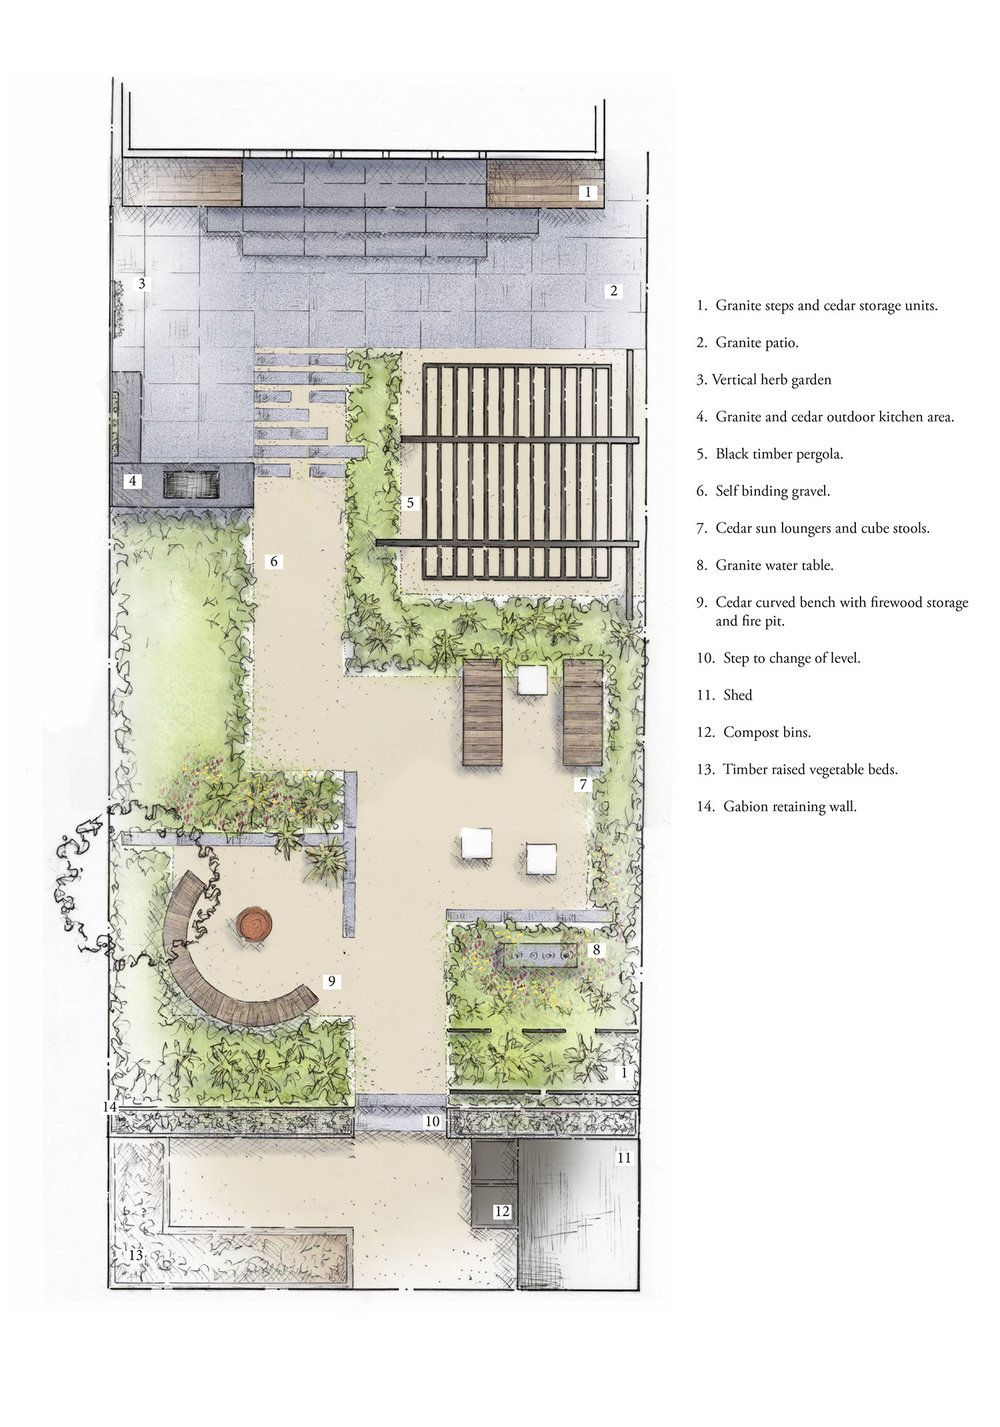 Burghill Rd Garden Design Plans Roof Garden Plan Landscape Design Plans